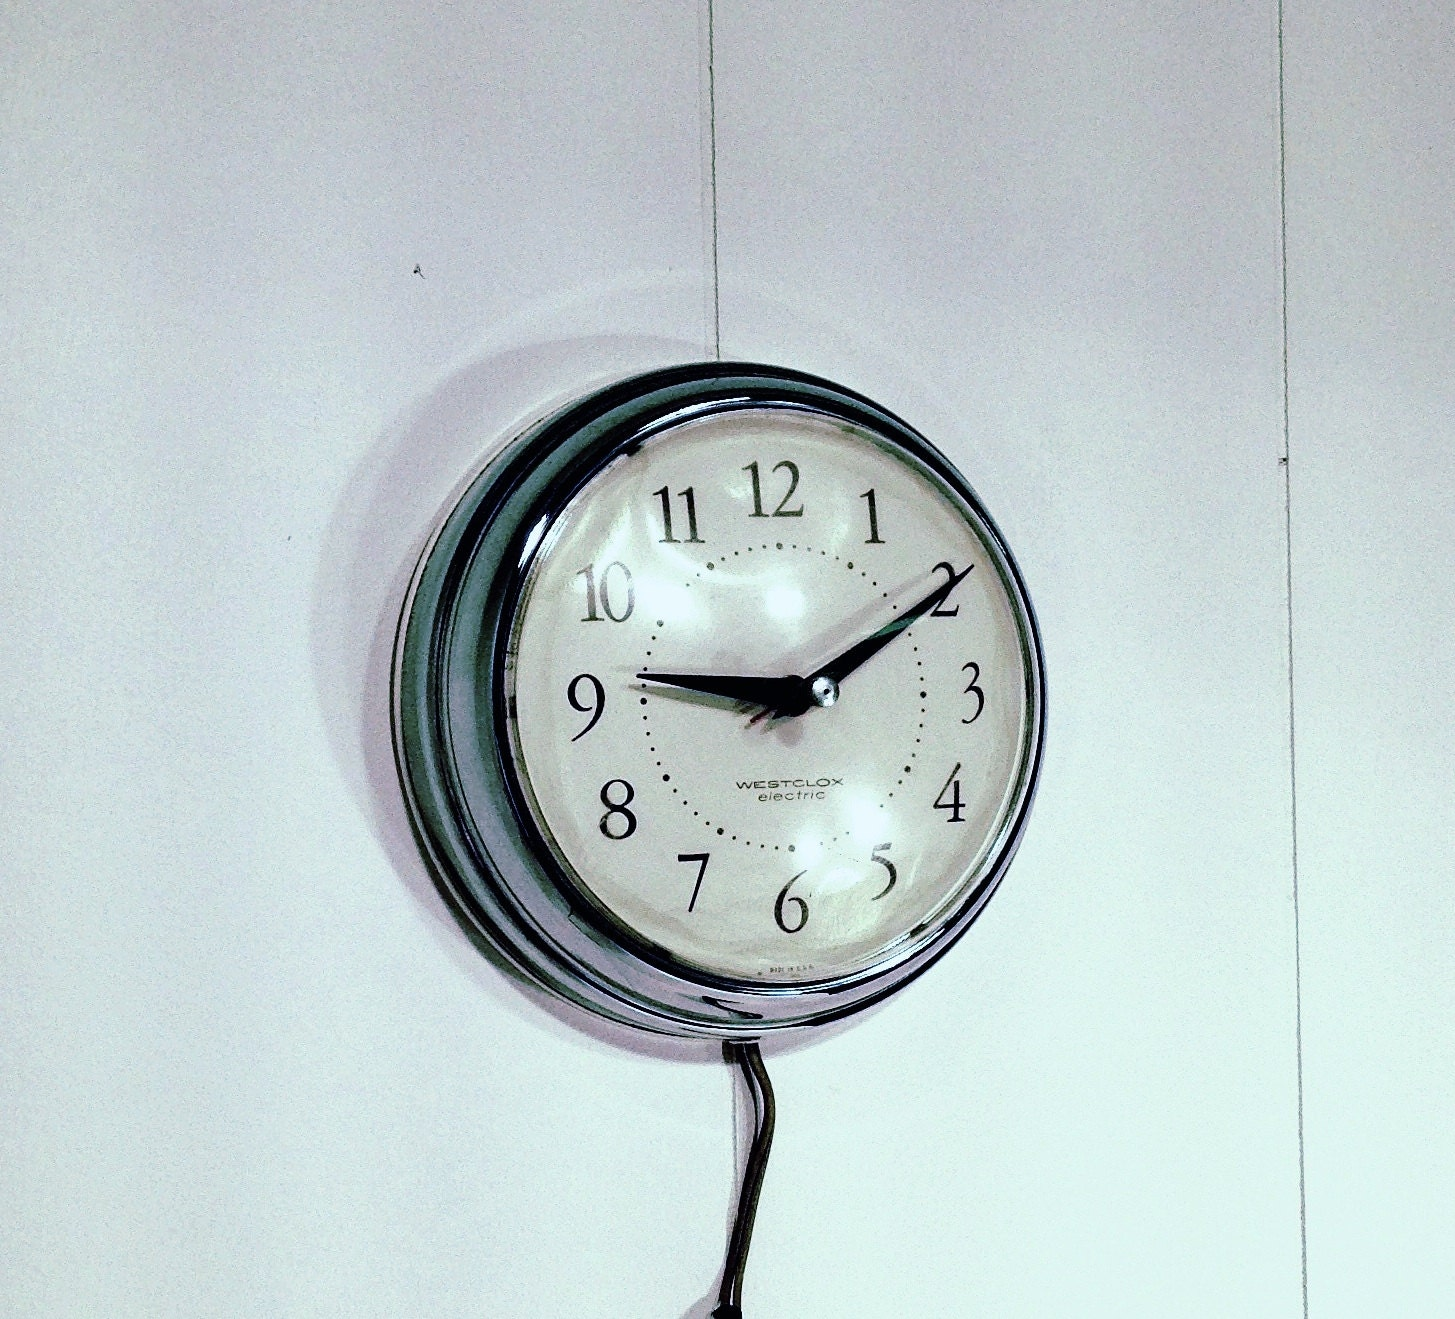 Retro Electric Kitchen Wall Clocks: Vintage Electric Kitchen Wall Clock Running Metal By Gillardgurl